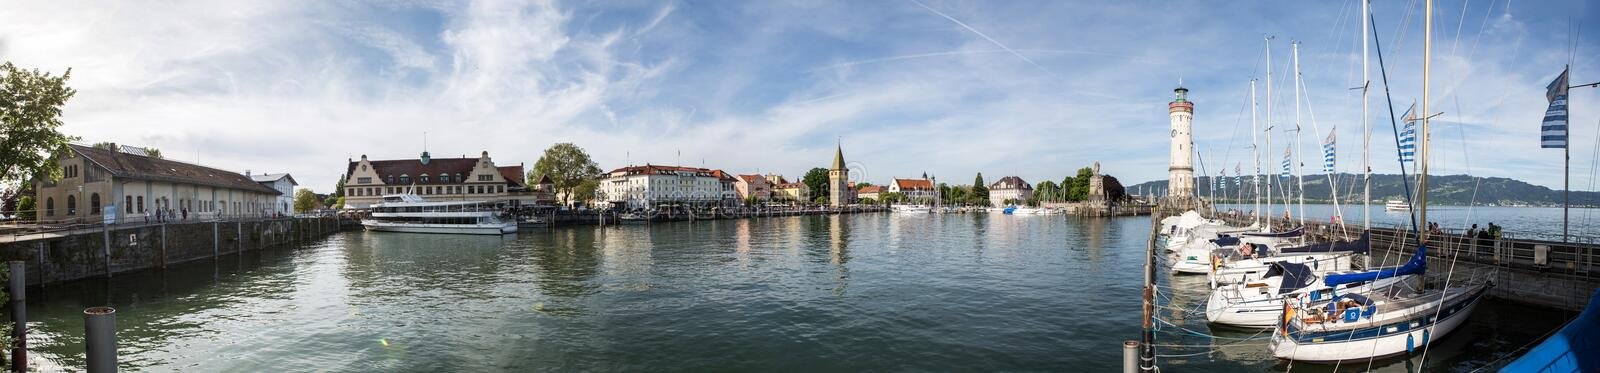 Bodensee Lindau, panorama Portowy Hafen obrazy royalty free